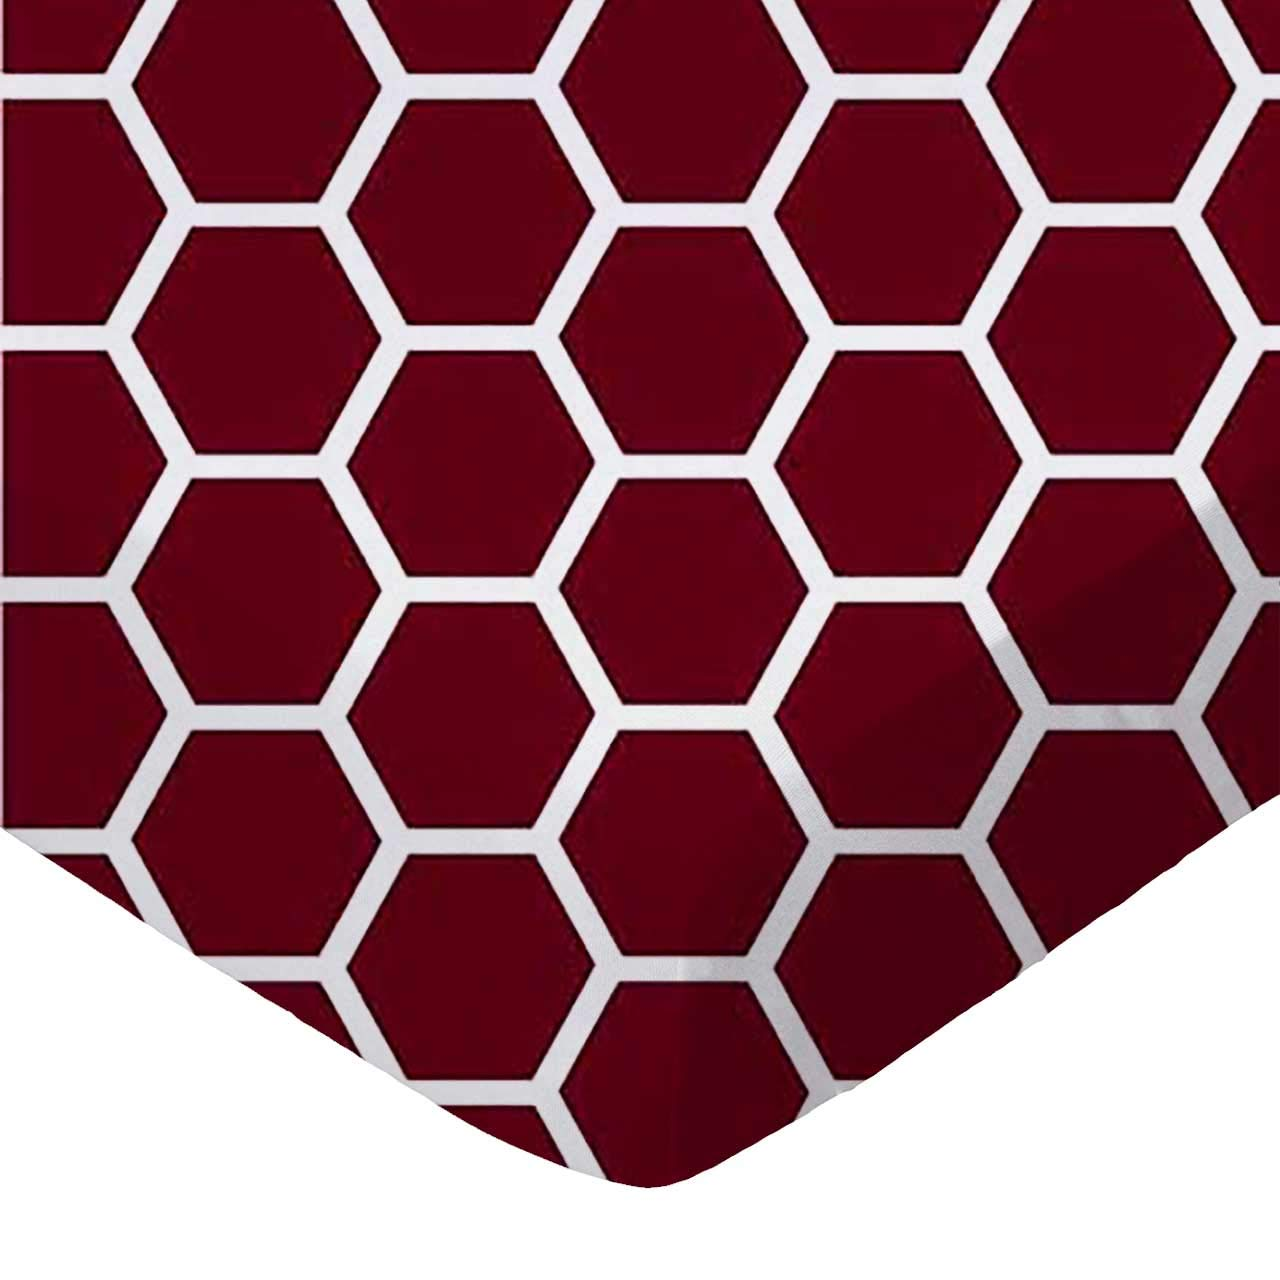 SheetWorld Fitted Sheet (Fits BabyBjorn Travel Crib Light) - Burgundy Honeycomb - Made In USA